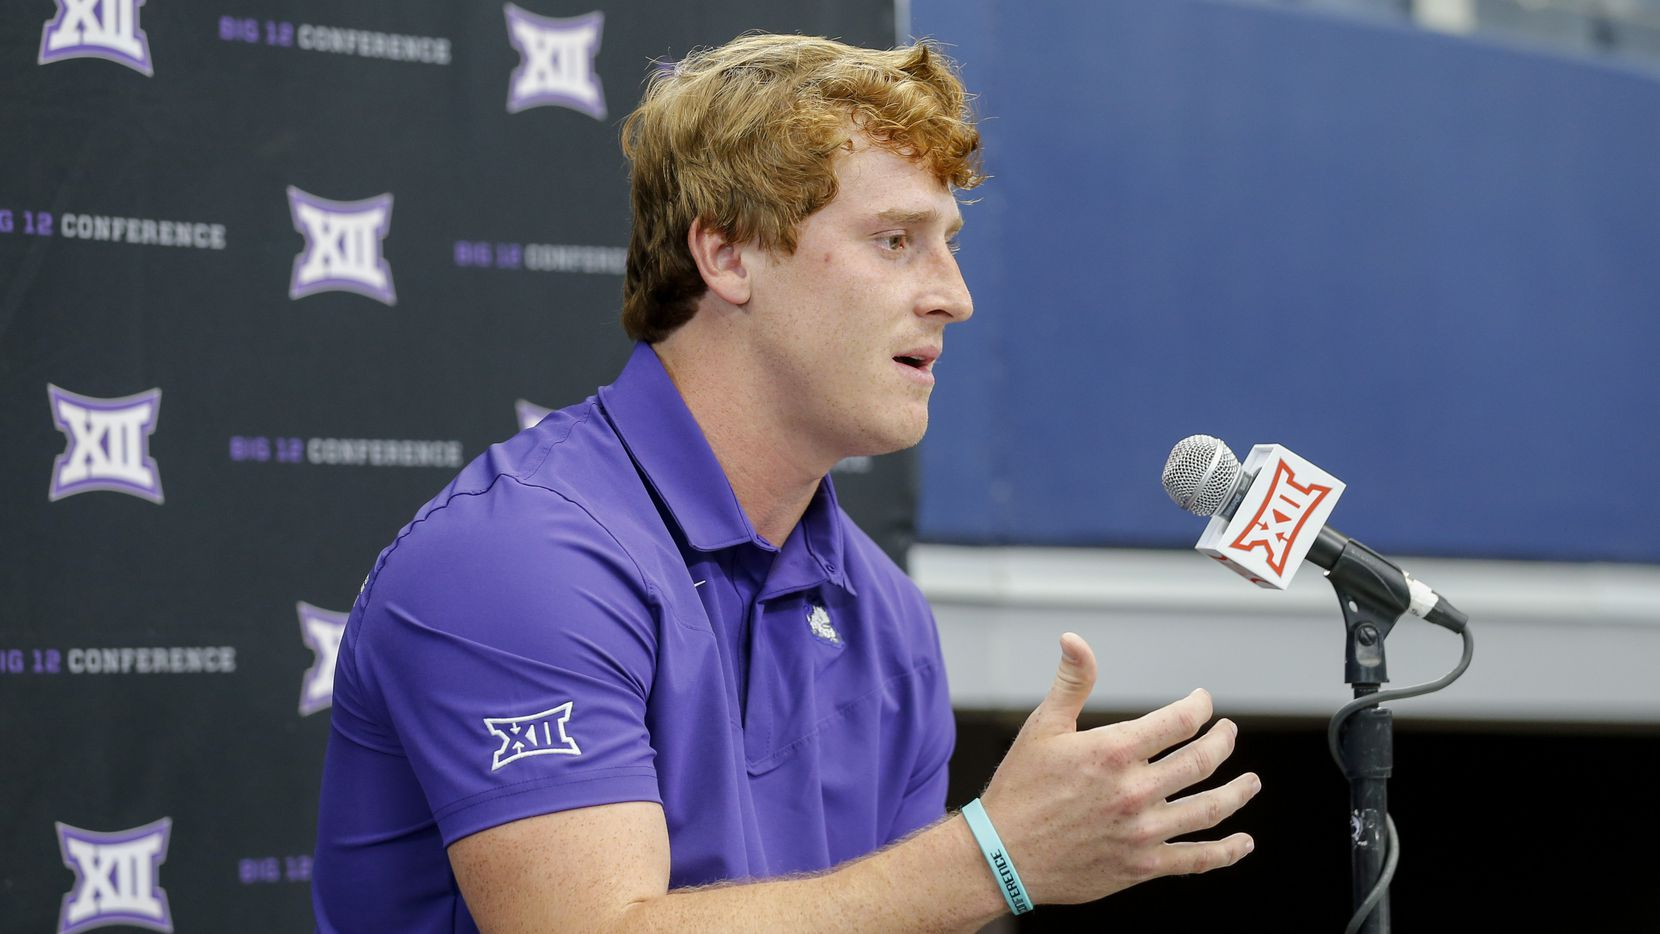 TCU quarterback Max Duggan speaks during the Big 12 Conference Media Days at AT&T Stadium on Wednesday, July 14, 2021, in Arlington.